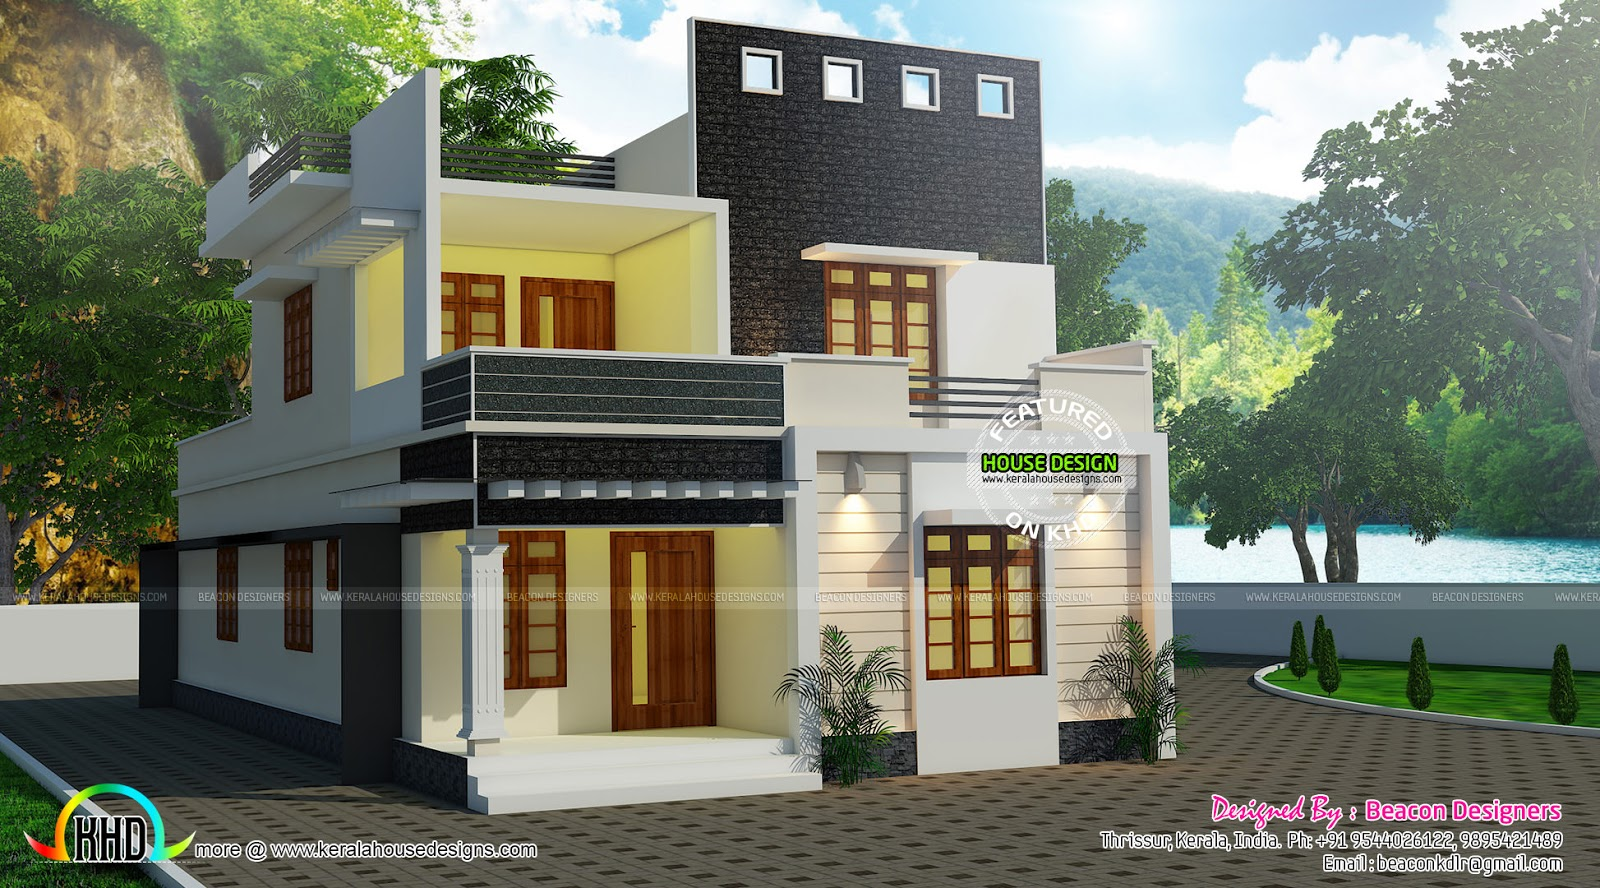 Exceptional Cute Contemporary Home Design Part - 12: Cute And Small Double Storied Home Plan